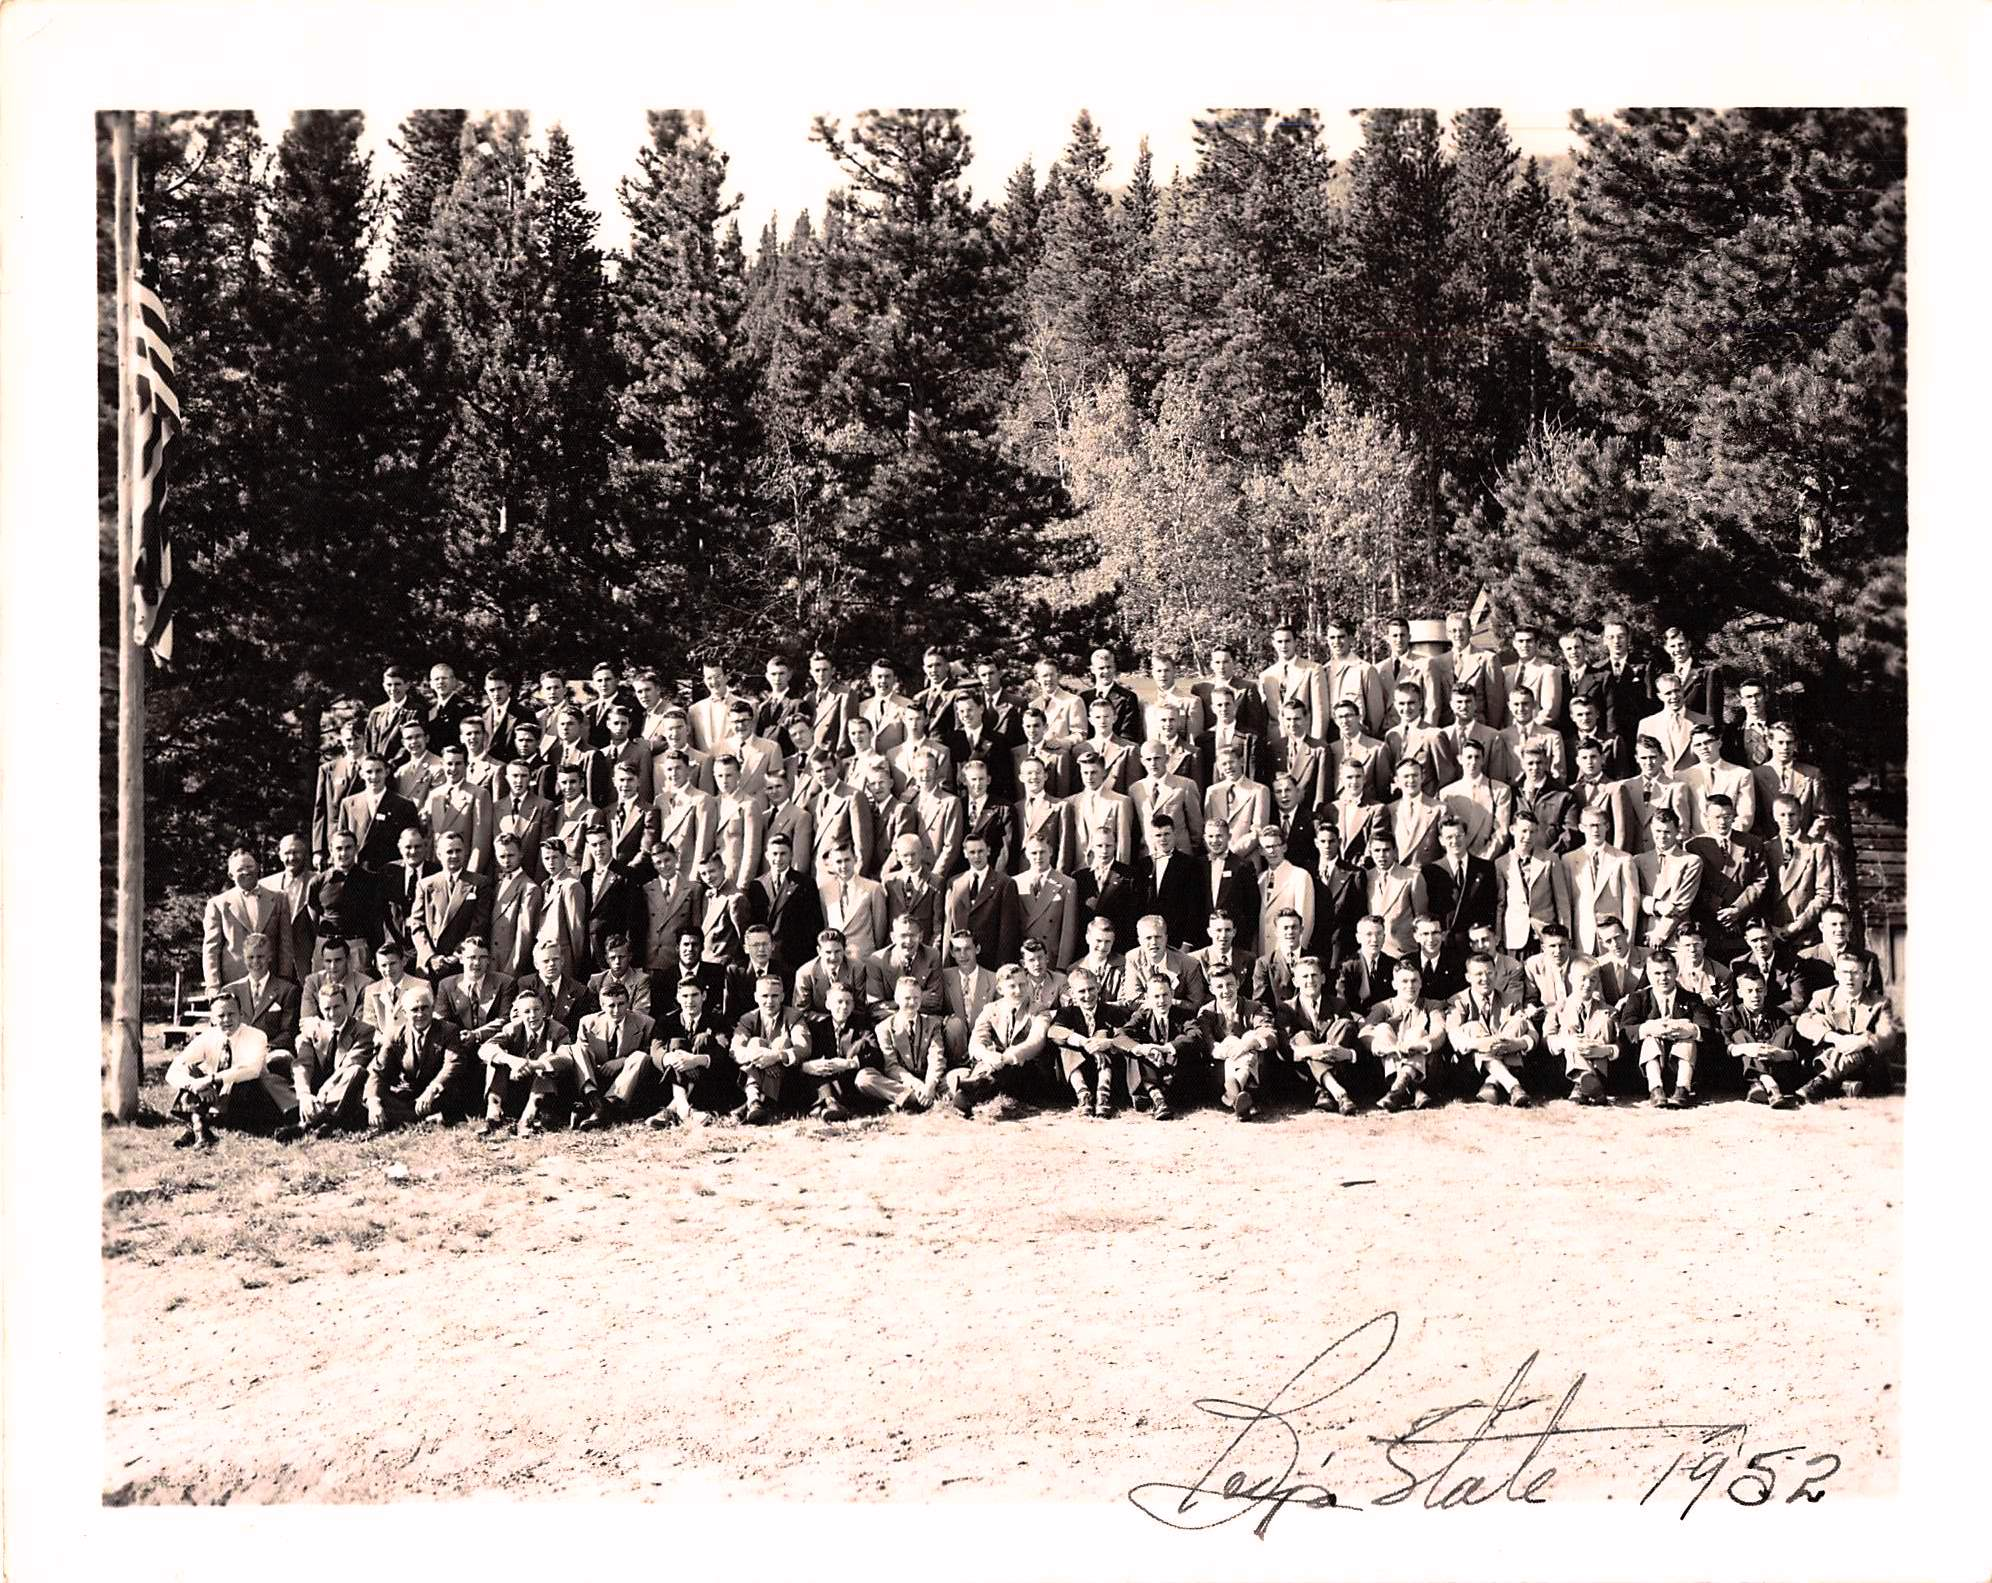 1952 Wyoming Boys' State delegation